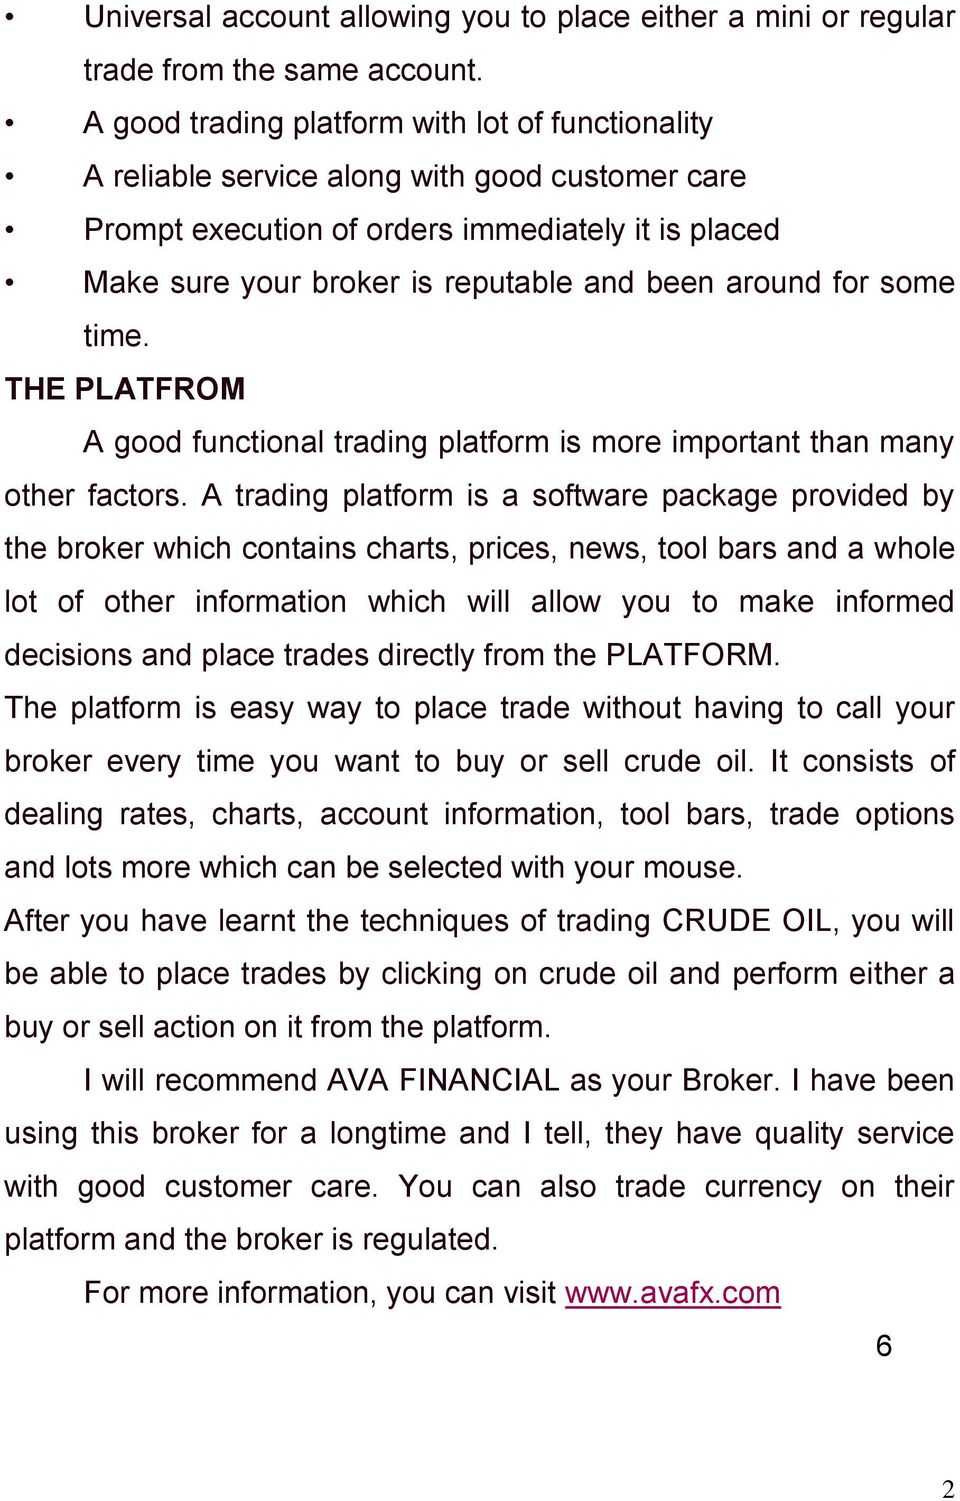 around for some time. THE PLATFROM A good functional trading platform is more important than many other factors.